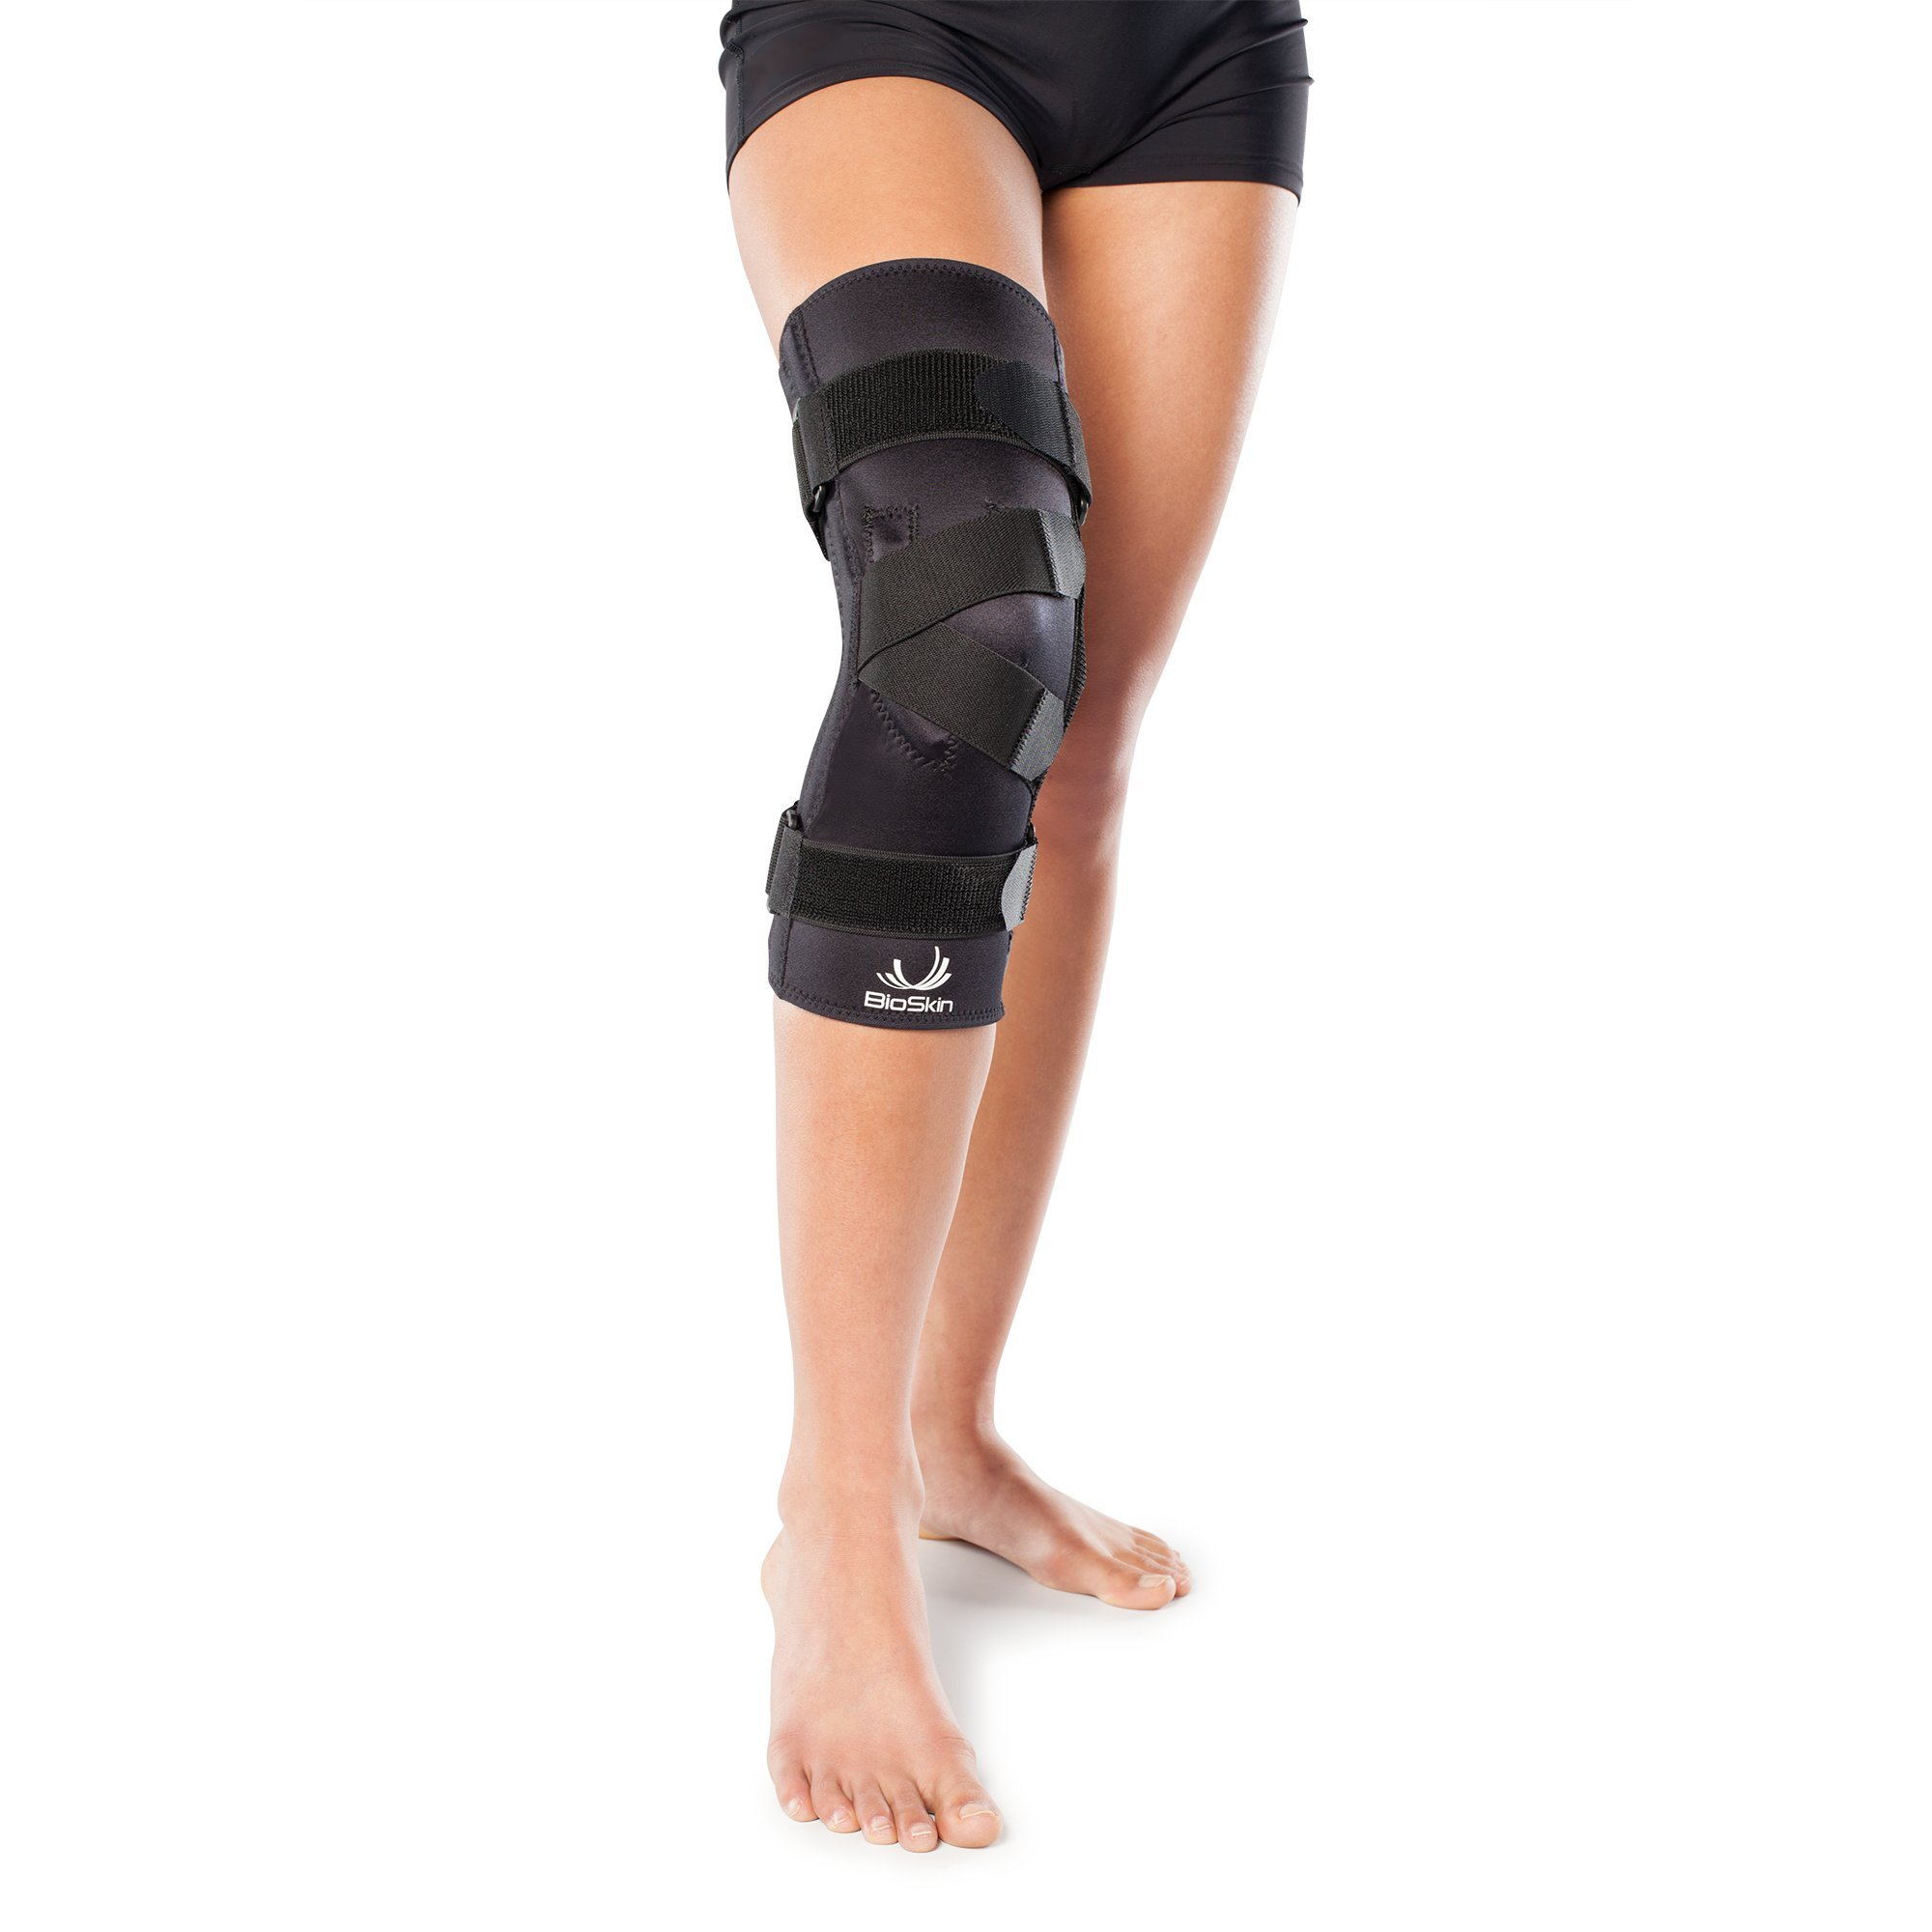 Premium J Knee Brace for Patella Support & Patella Tracking, Patellofemoral Pain and Dislocation- by BioSkin (L Left) by BioSkin